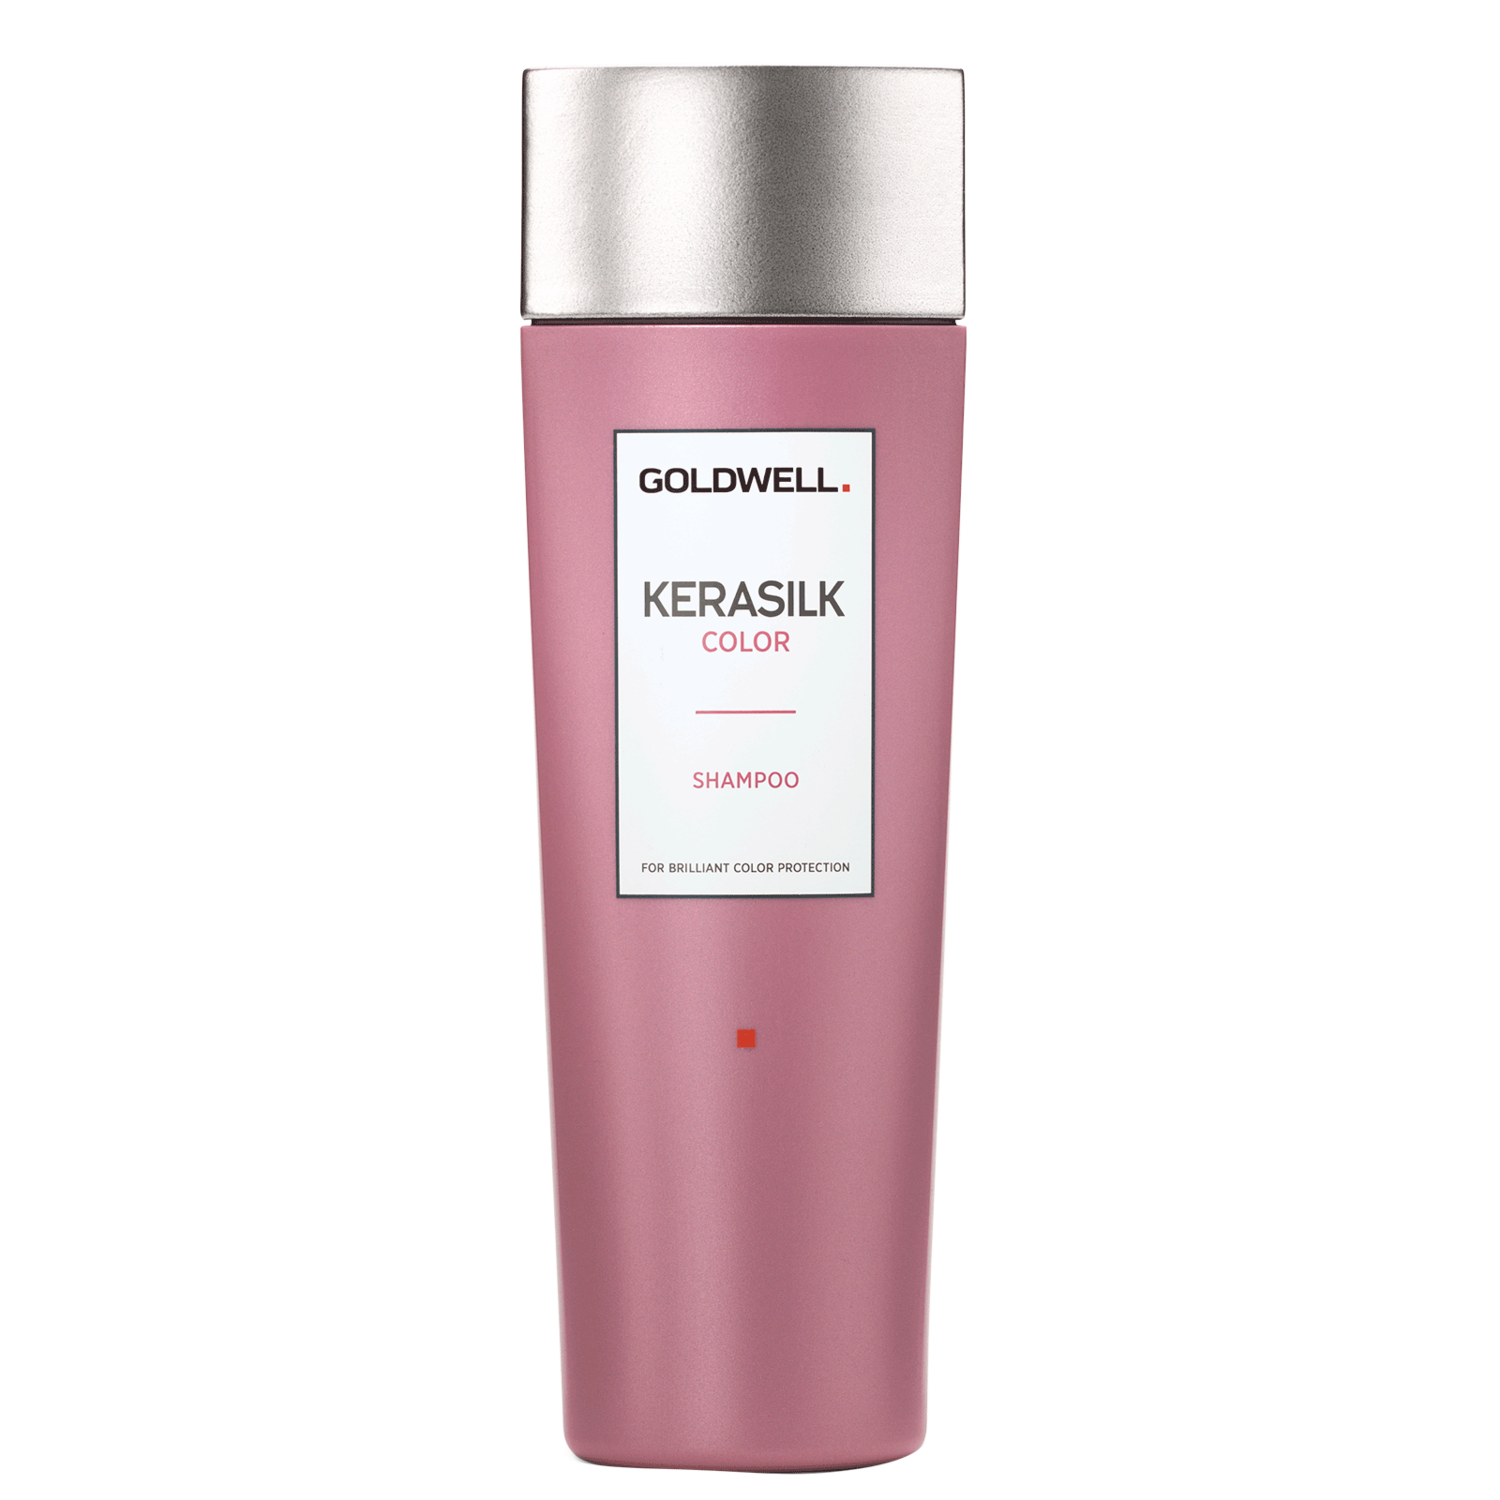 Goldwell Kerasilk Color Shampoo Sulfate Free 250 ml